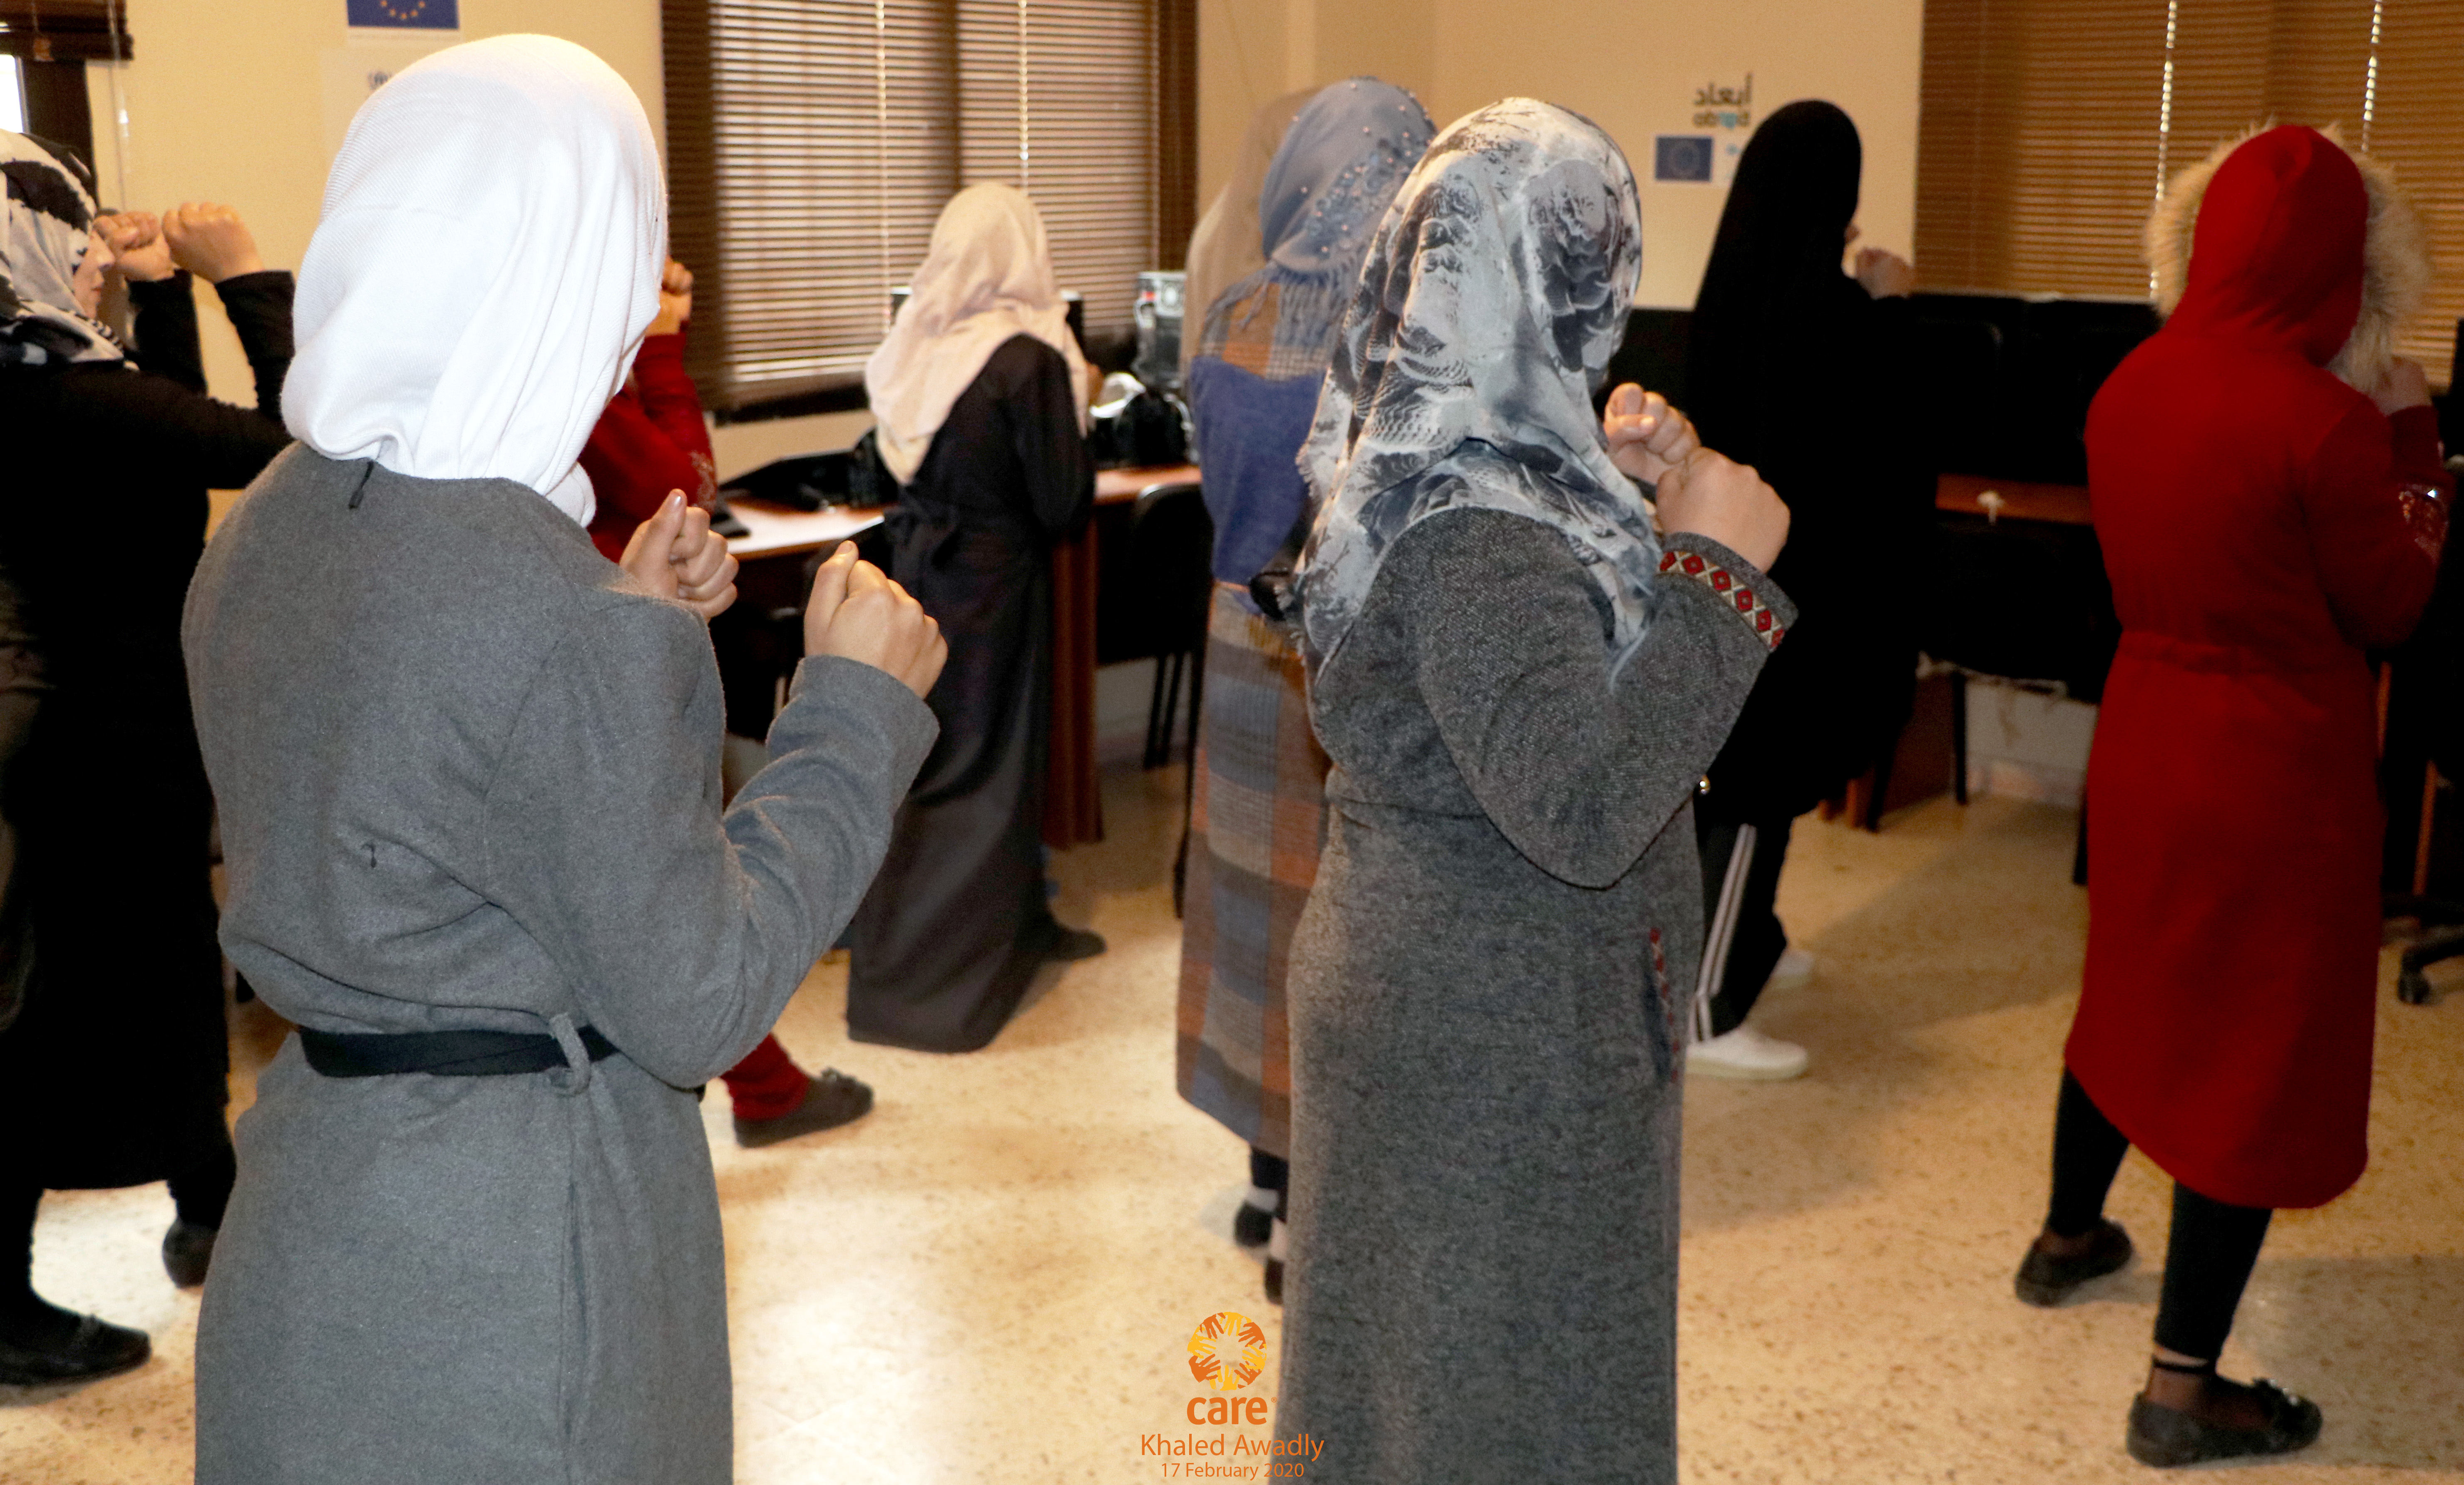 Trained in self-defence, Lebanese women find new confidence